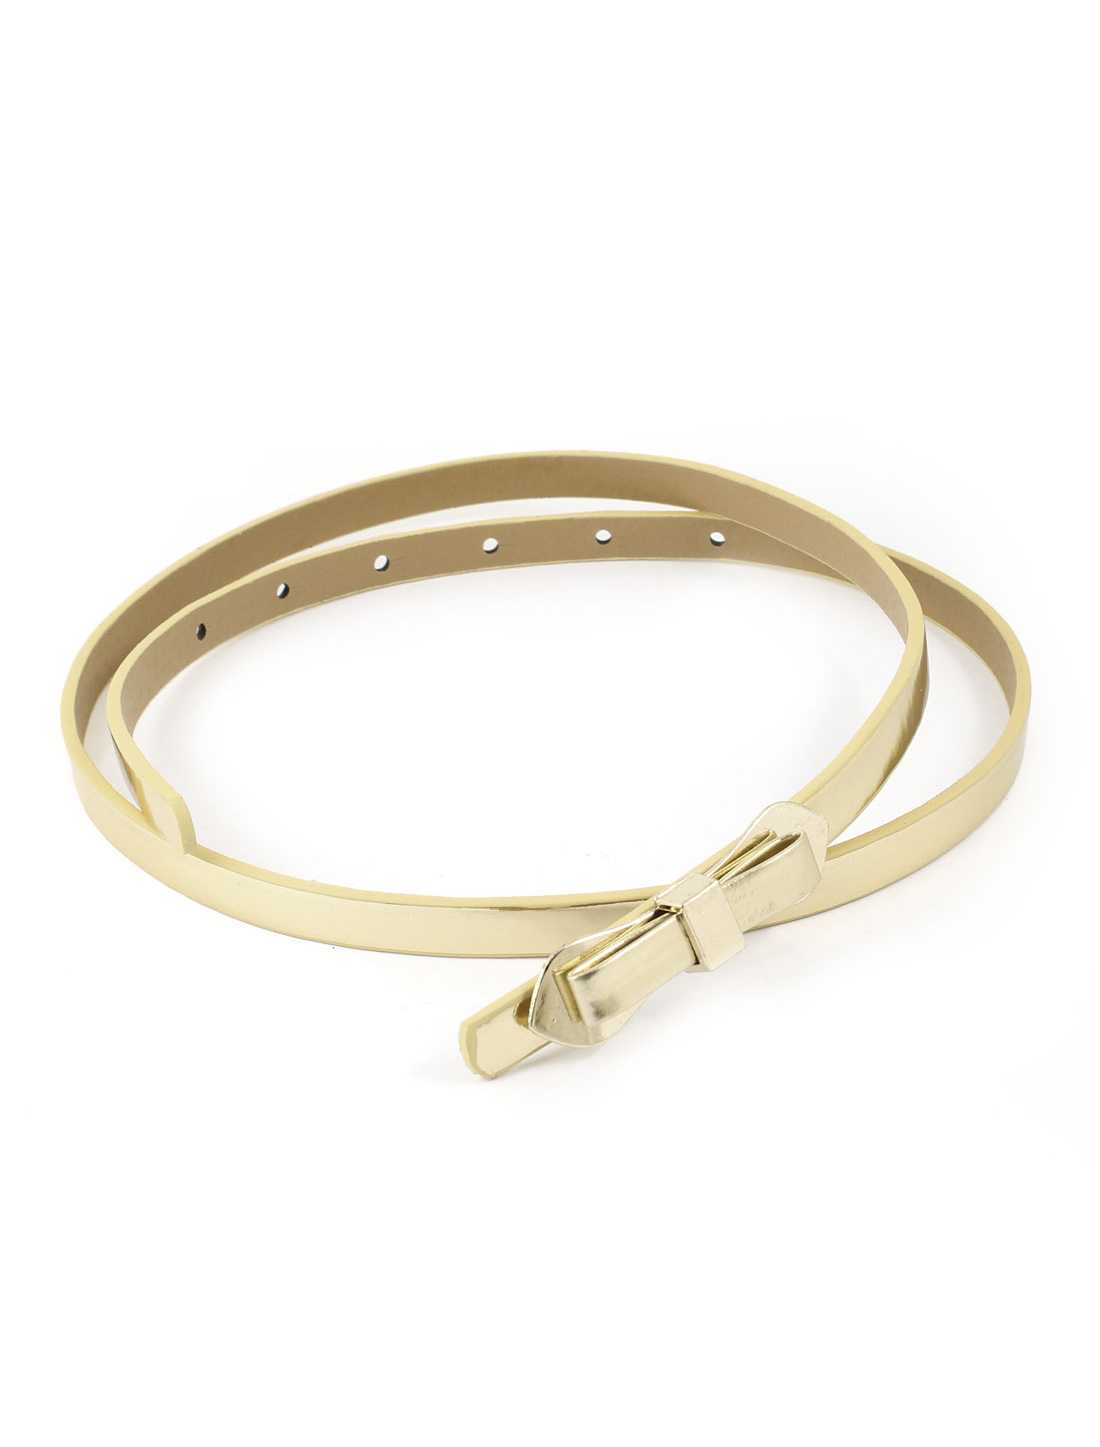 Bowtie Shaped Buckle Patent Leather Slim Waist Band Belt Gold Tone for Women